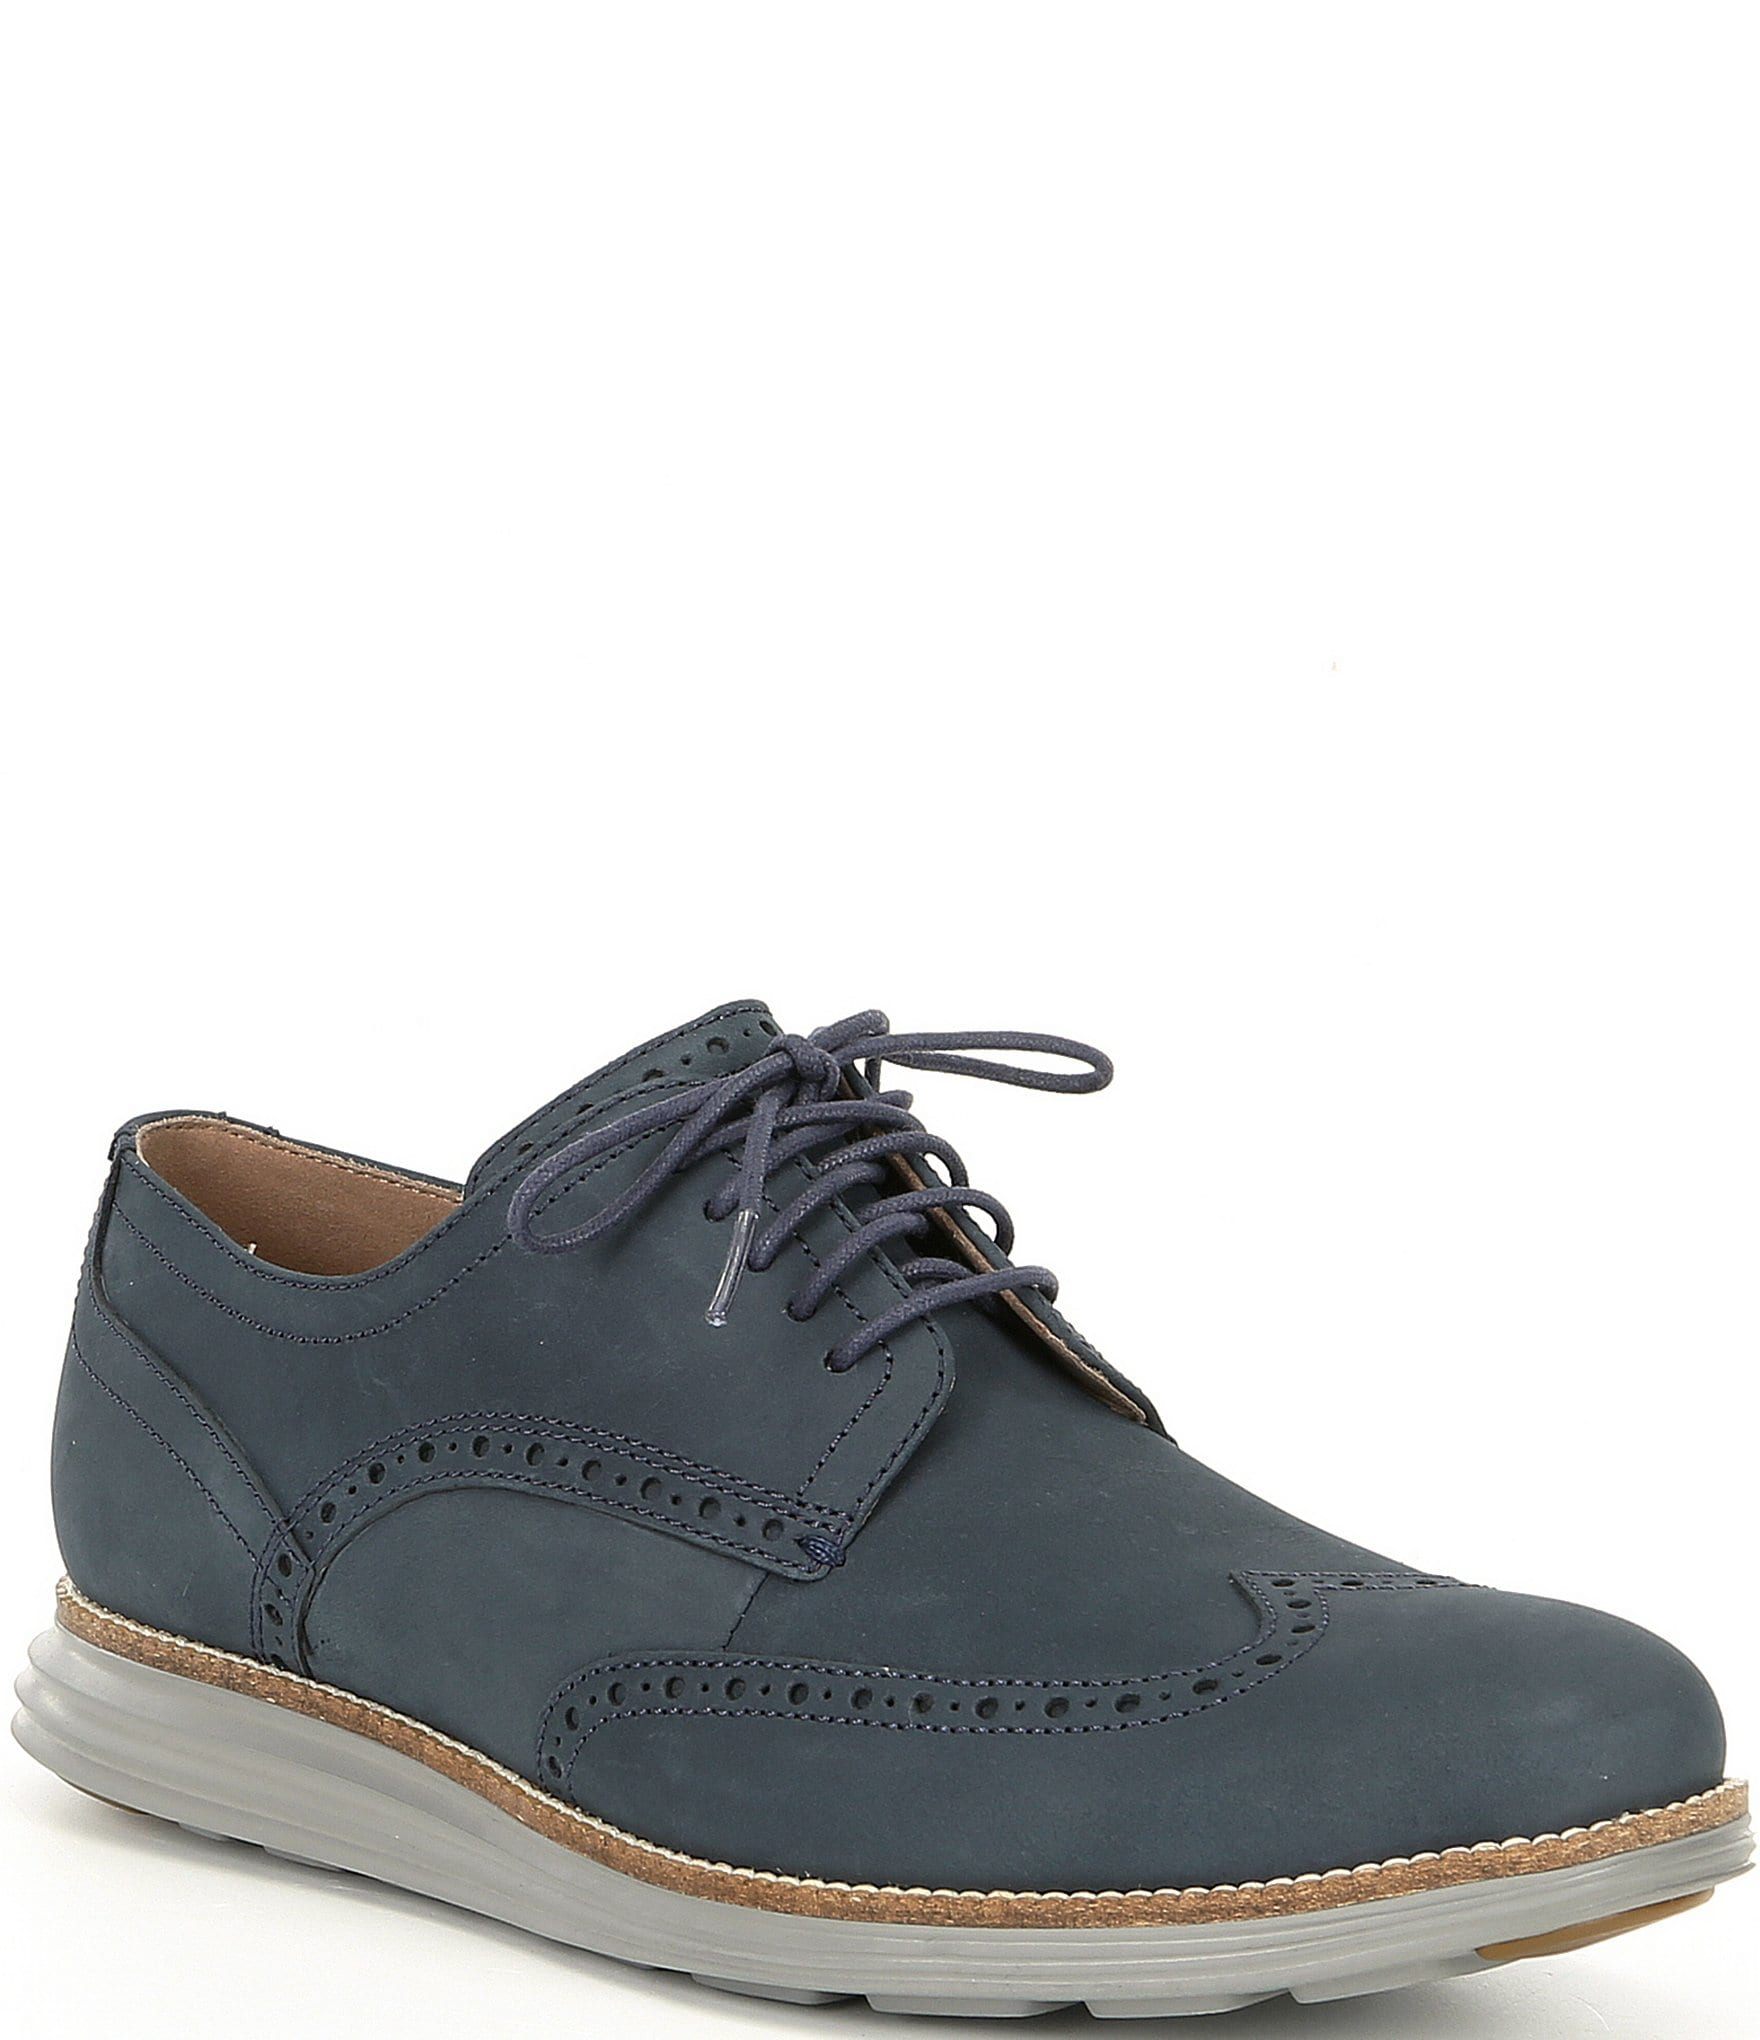 Original Wingtip Grand Oxford Haan Cole 35uK1TlFcJ